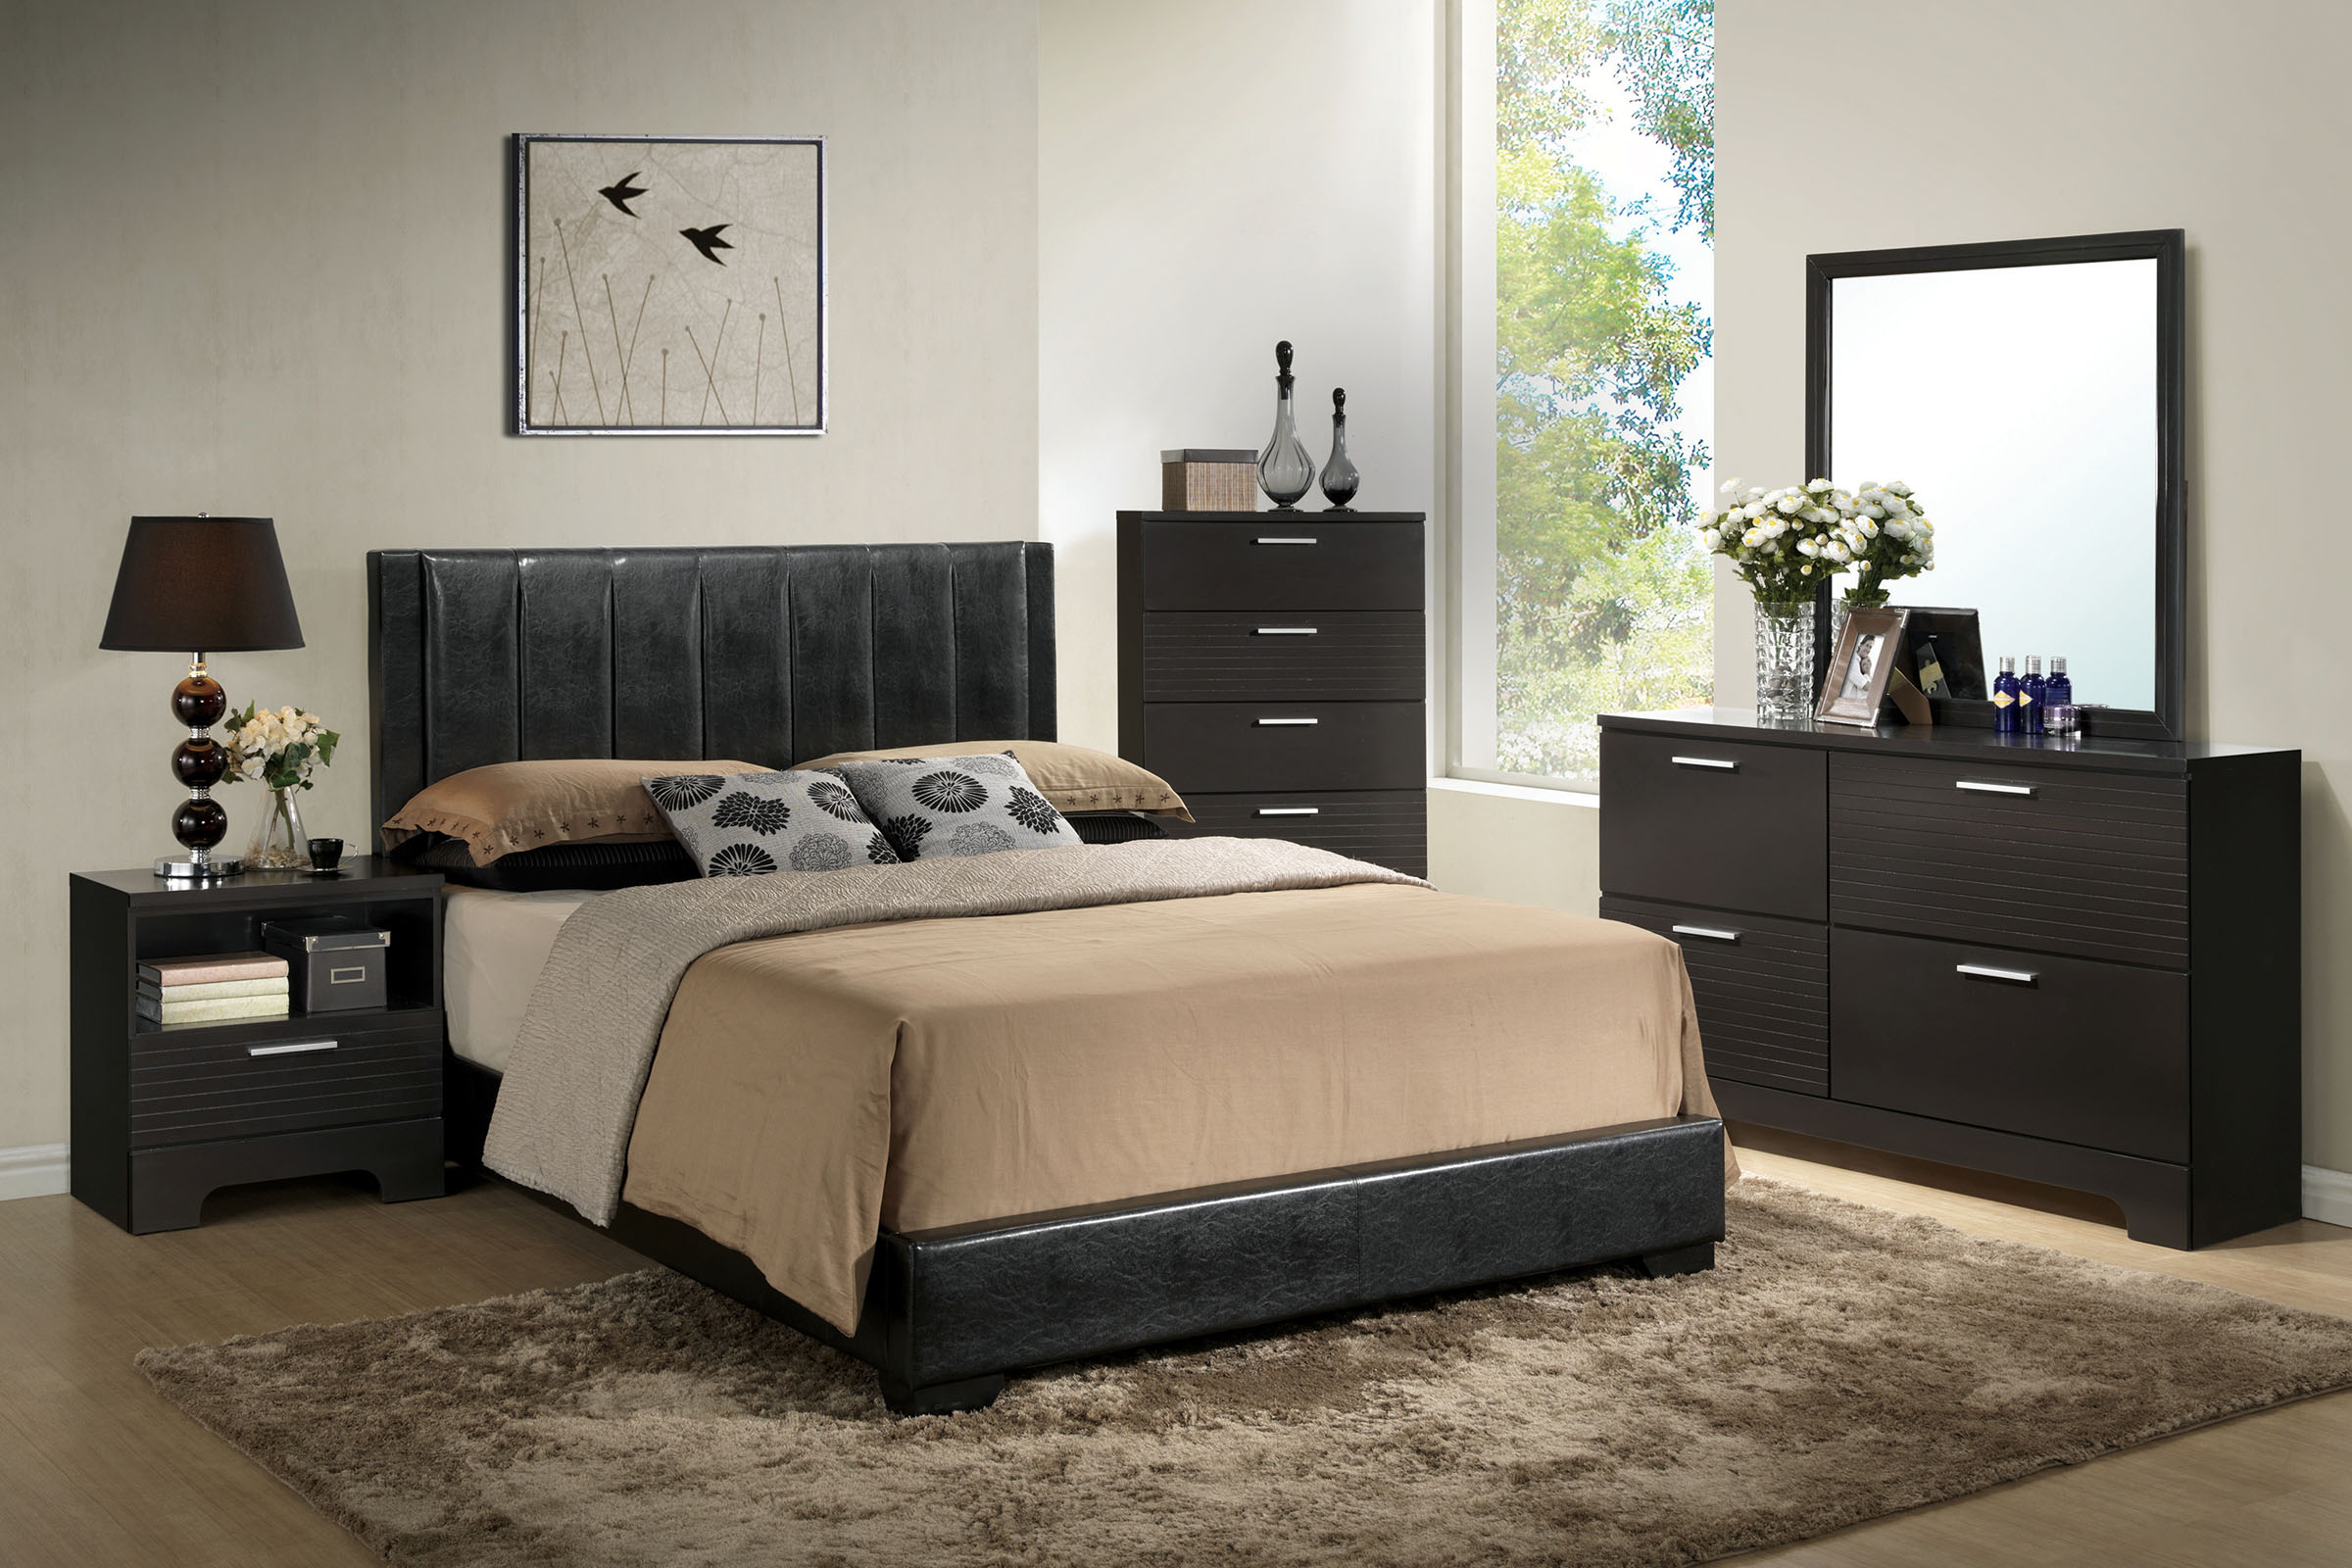 Burbank 5 Piece King Bedroom Set